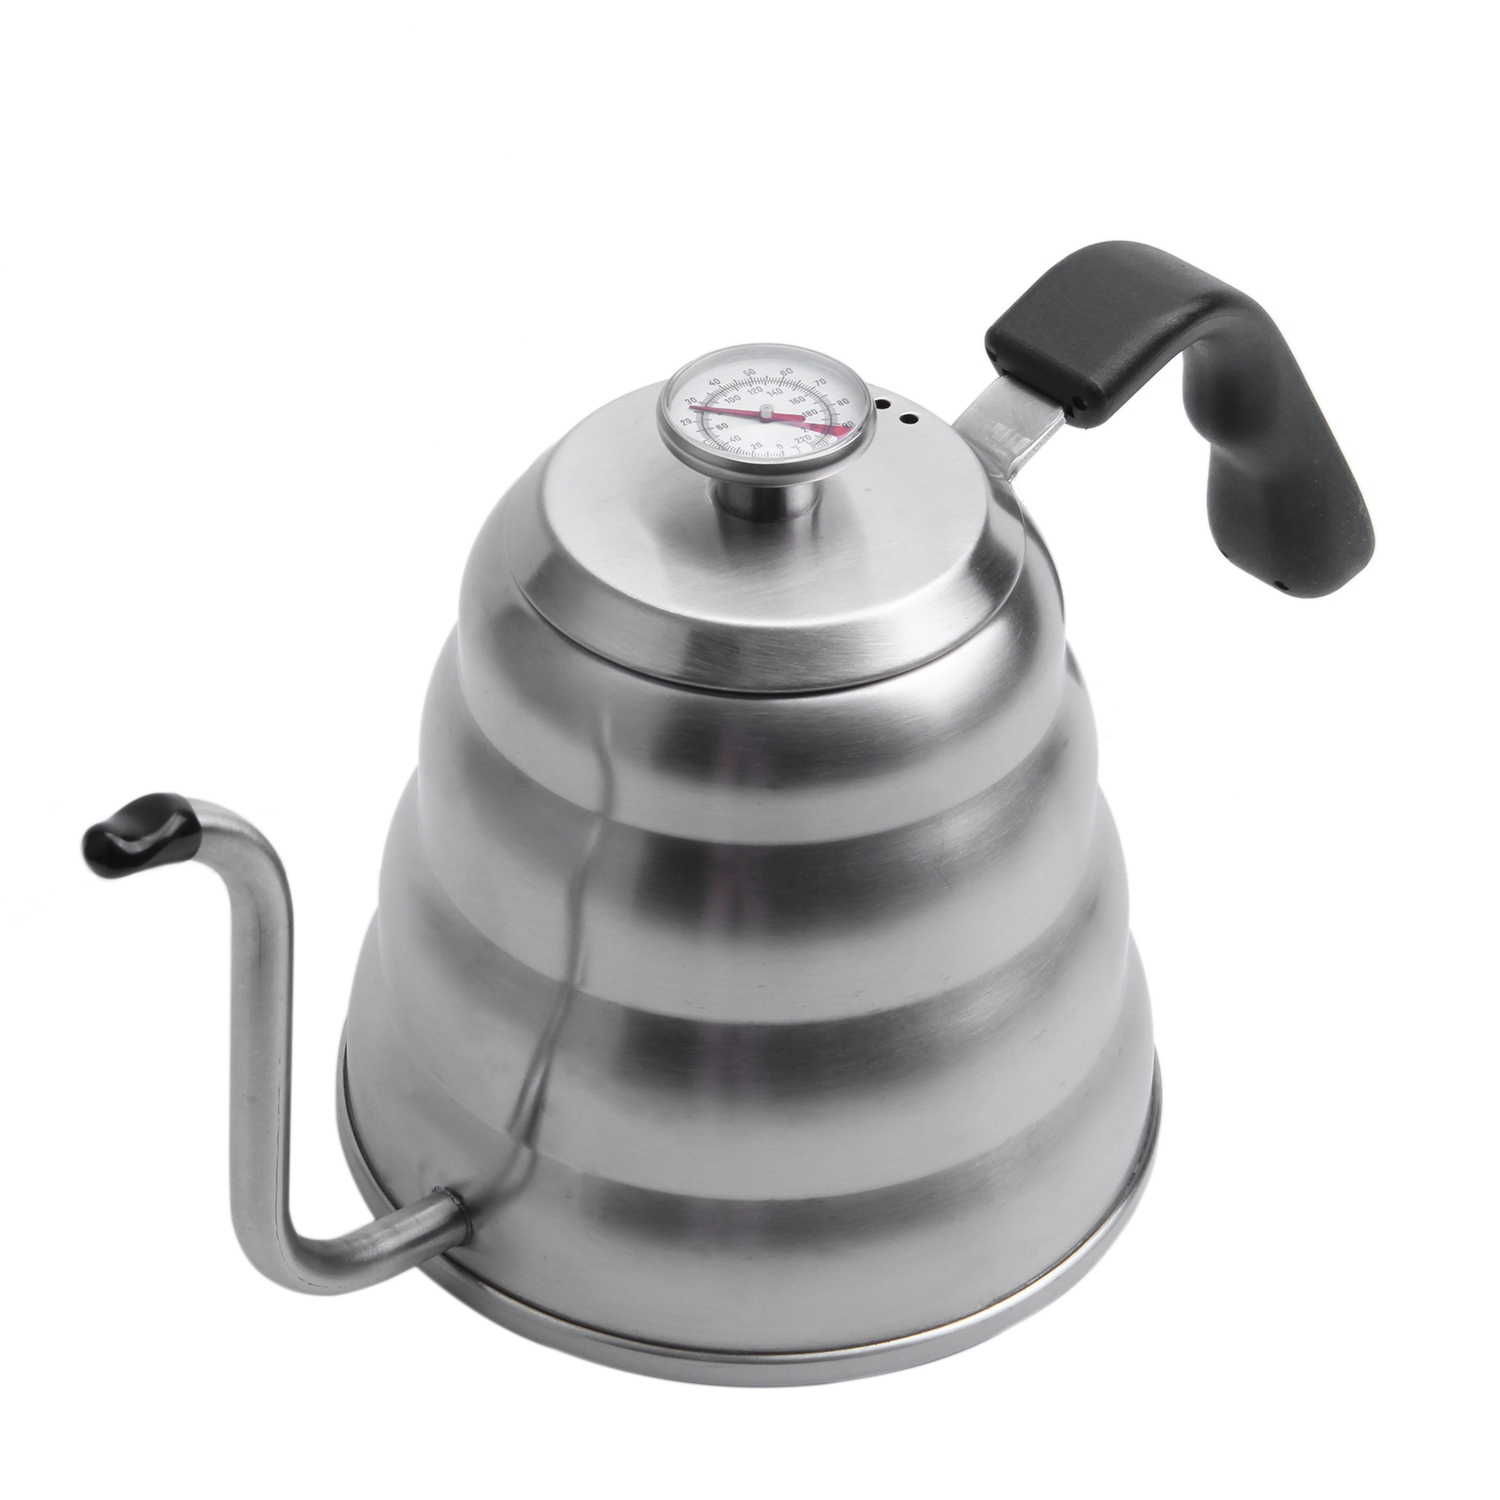 Premium Pour Over <font><b>Coffee</b></font> Kettle with for Precise Temperature 40floz - Gooseneck Tea Kettle - 5 Cup Stainless Steel Teapot for St image